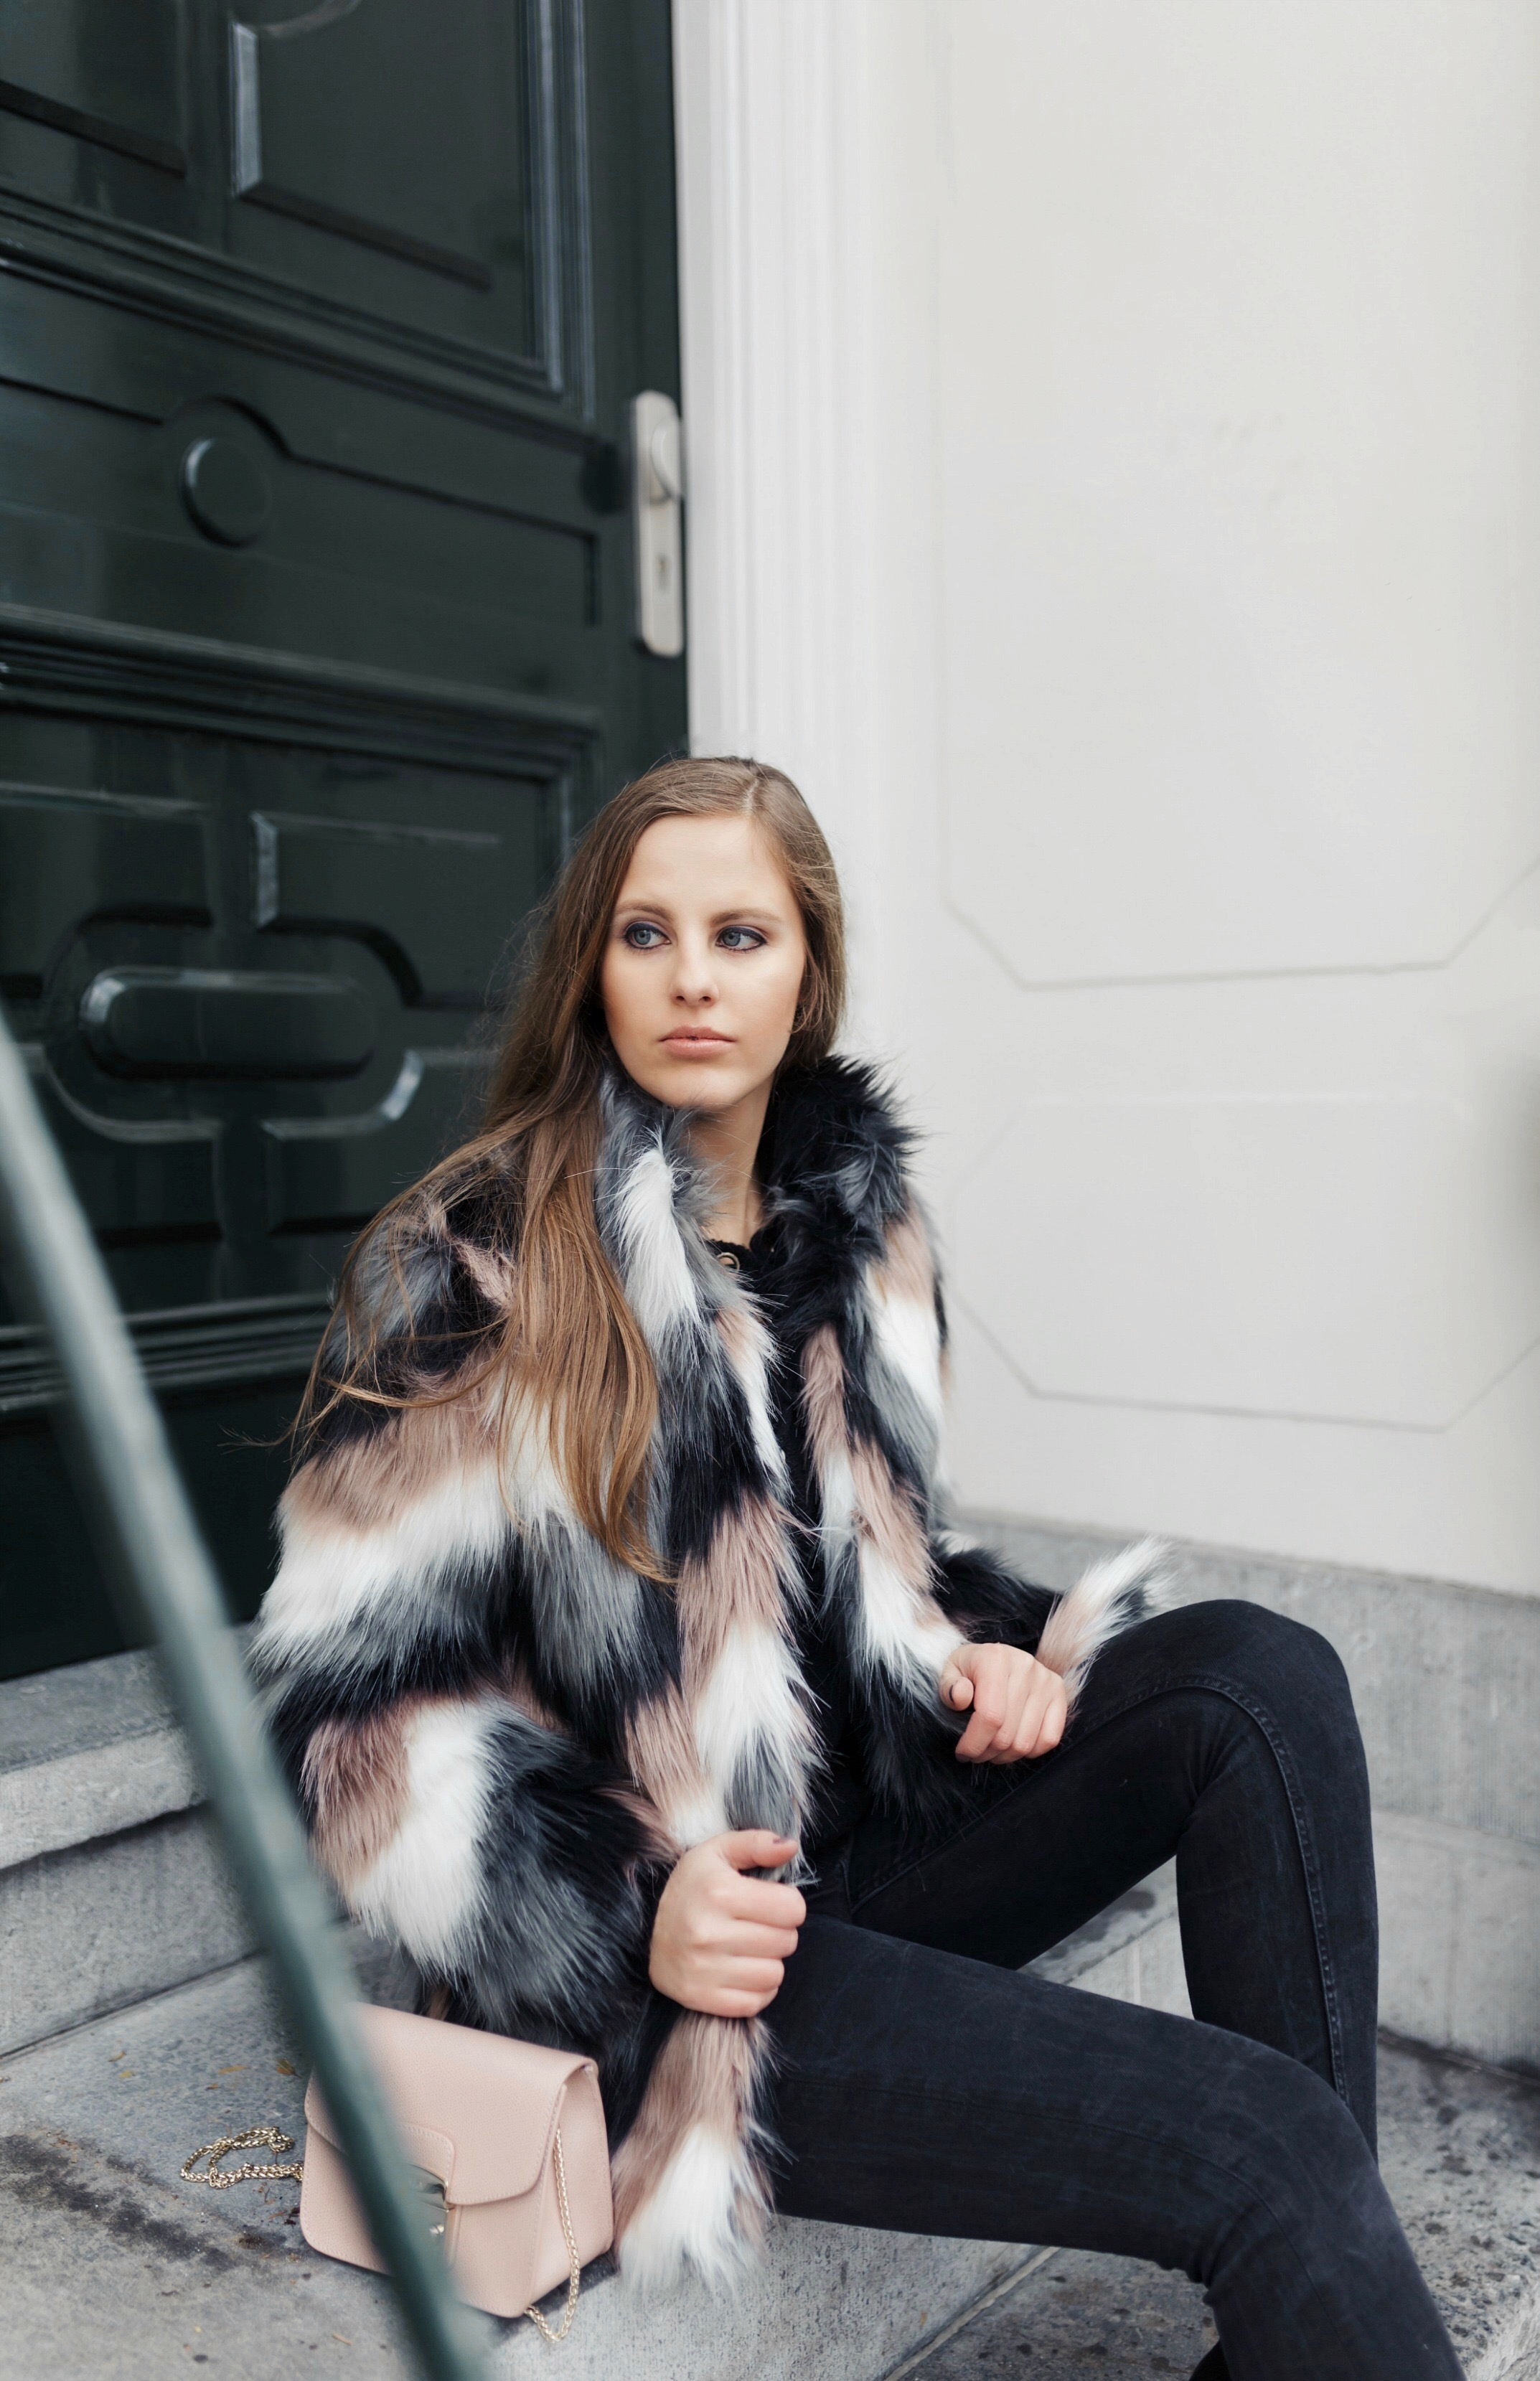 Furry Jacket - The Beauty Issue